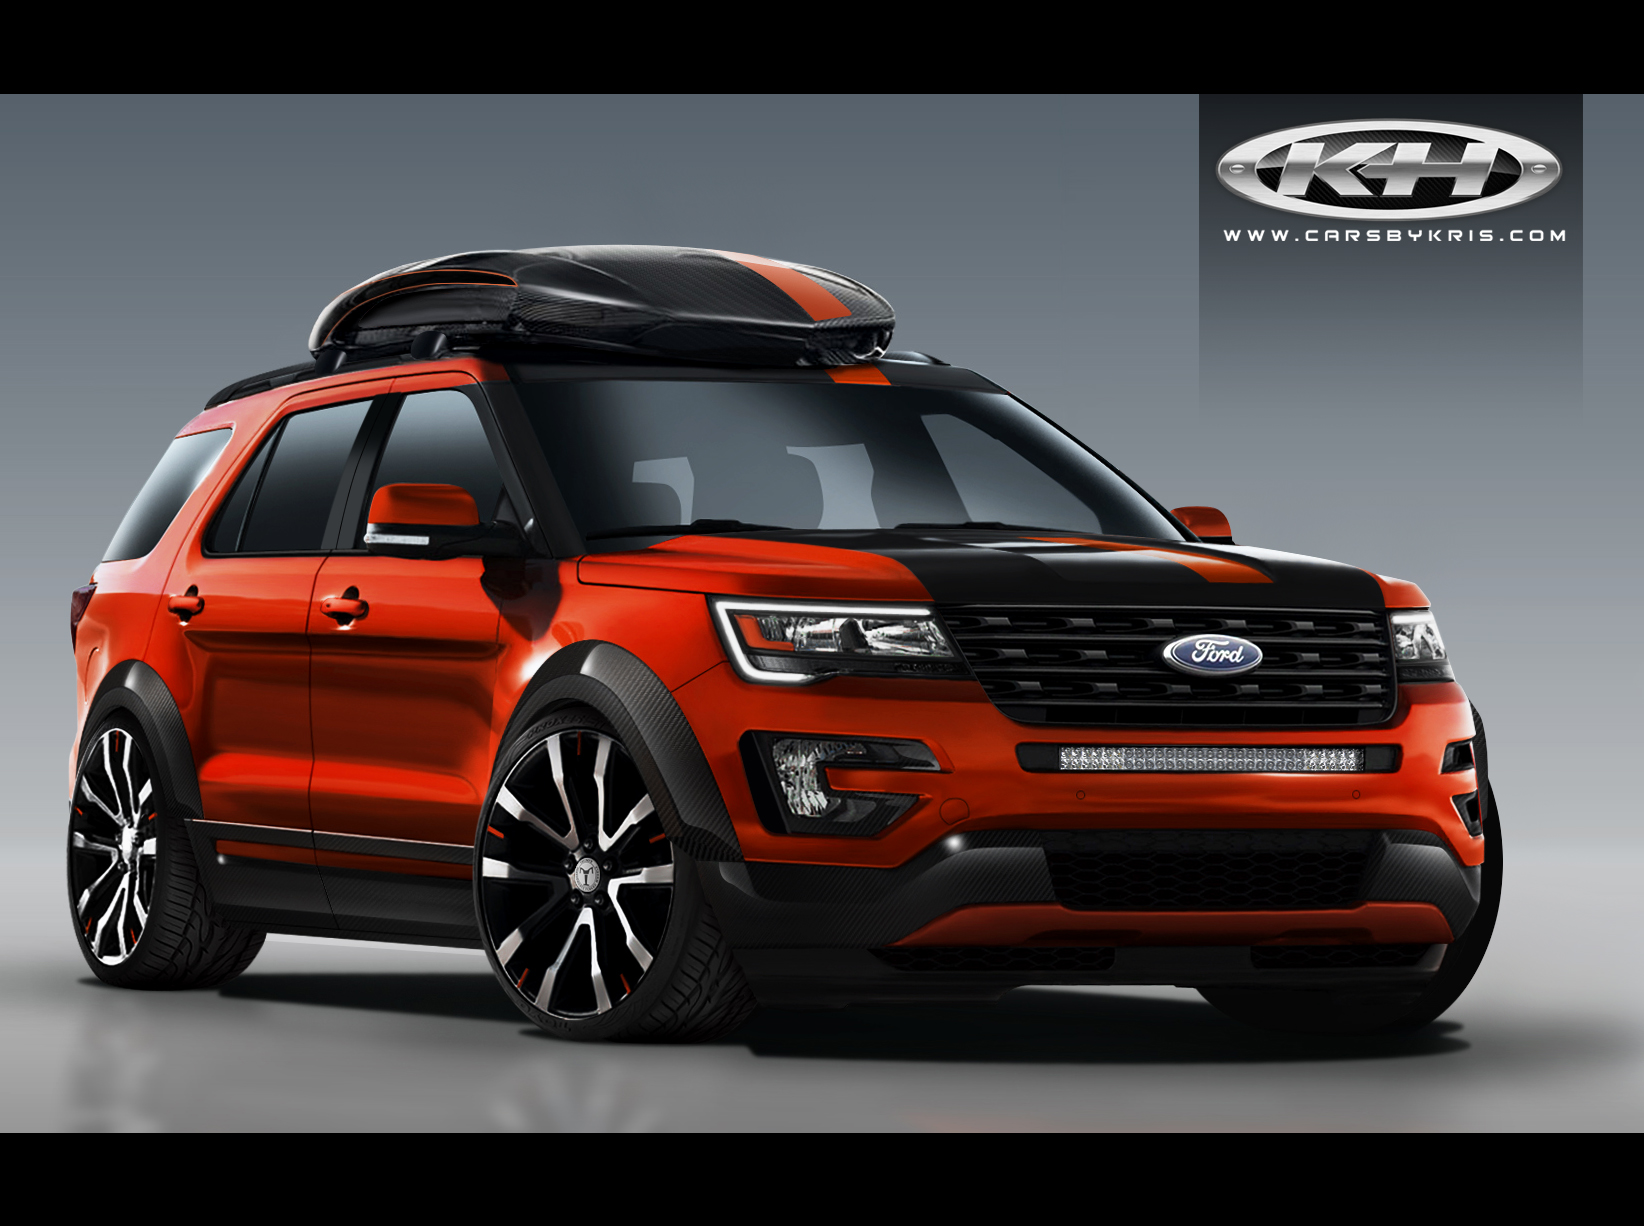 Wanderlust By Cars By Kris Ford Explorer Sport